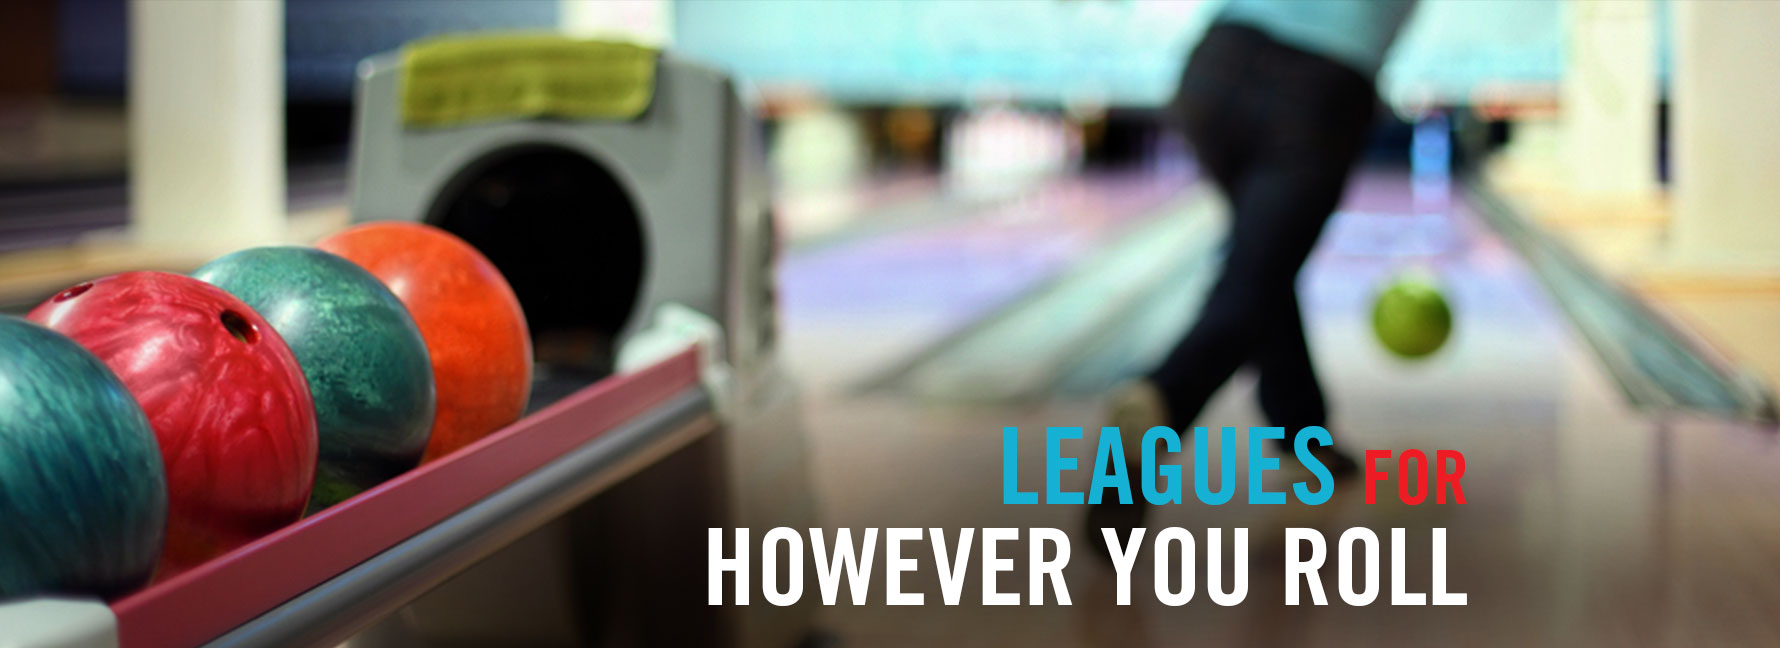 Leagues for However You Roll